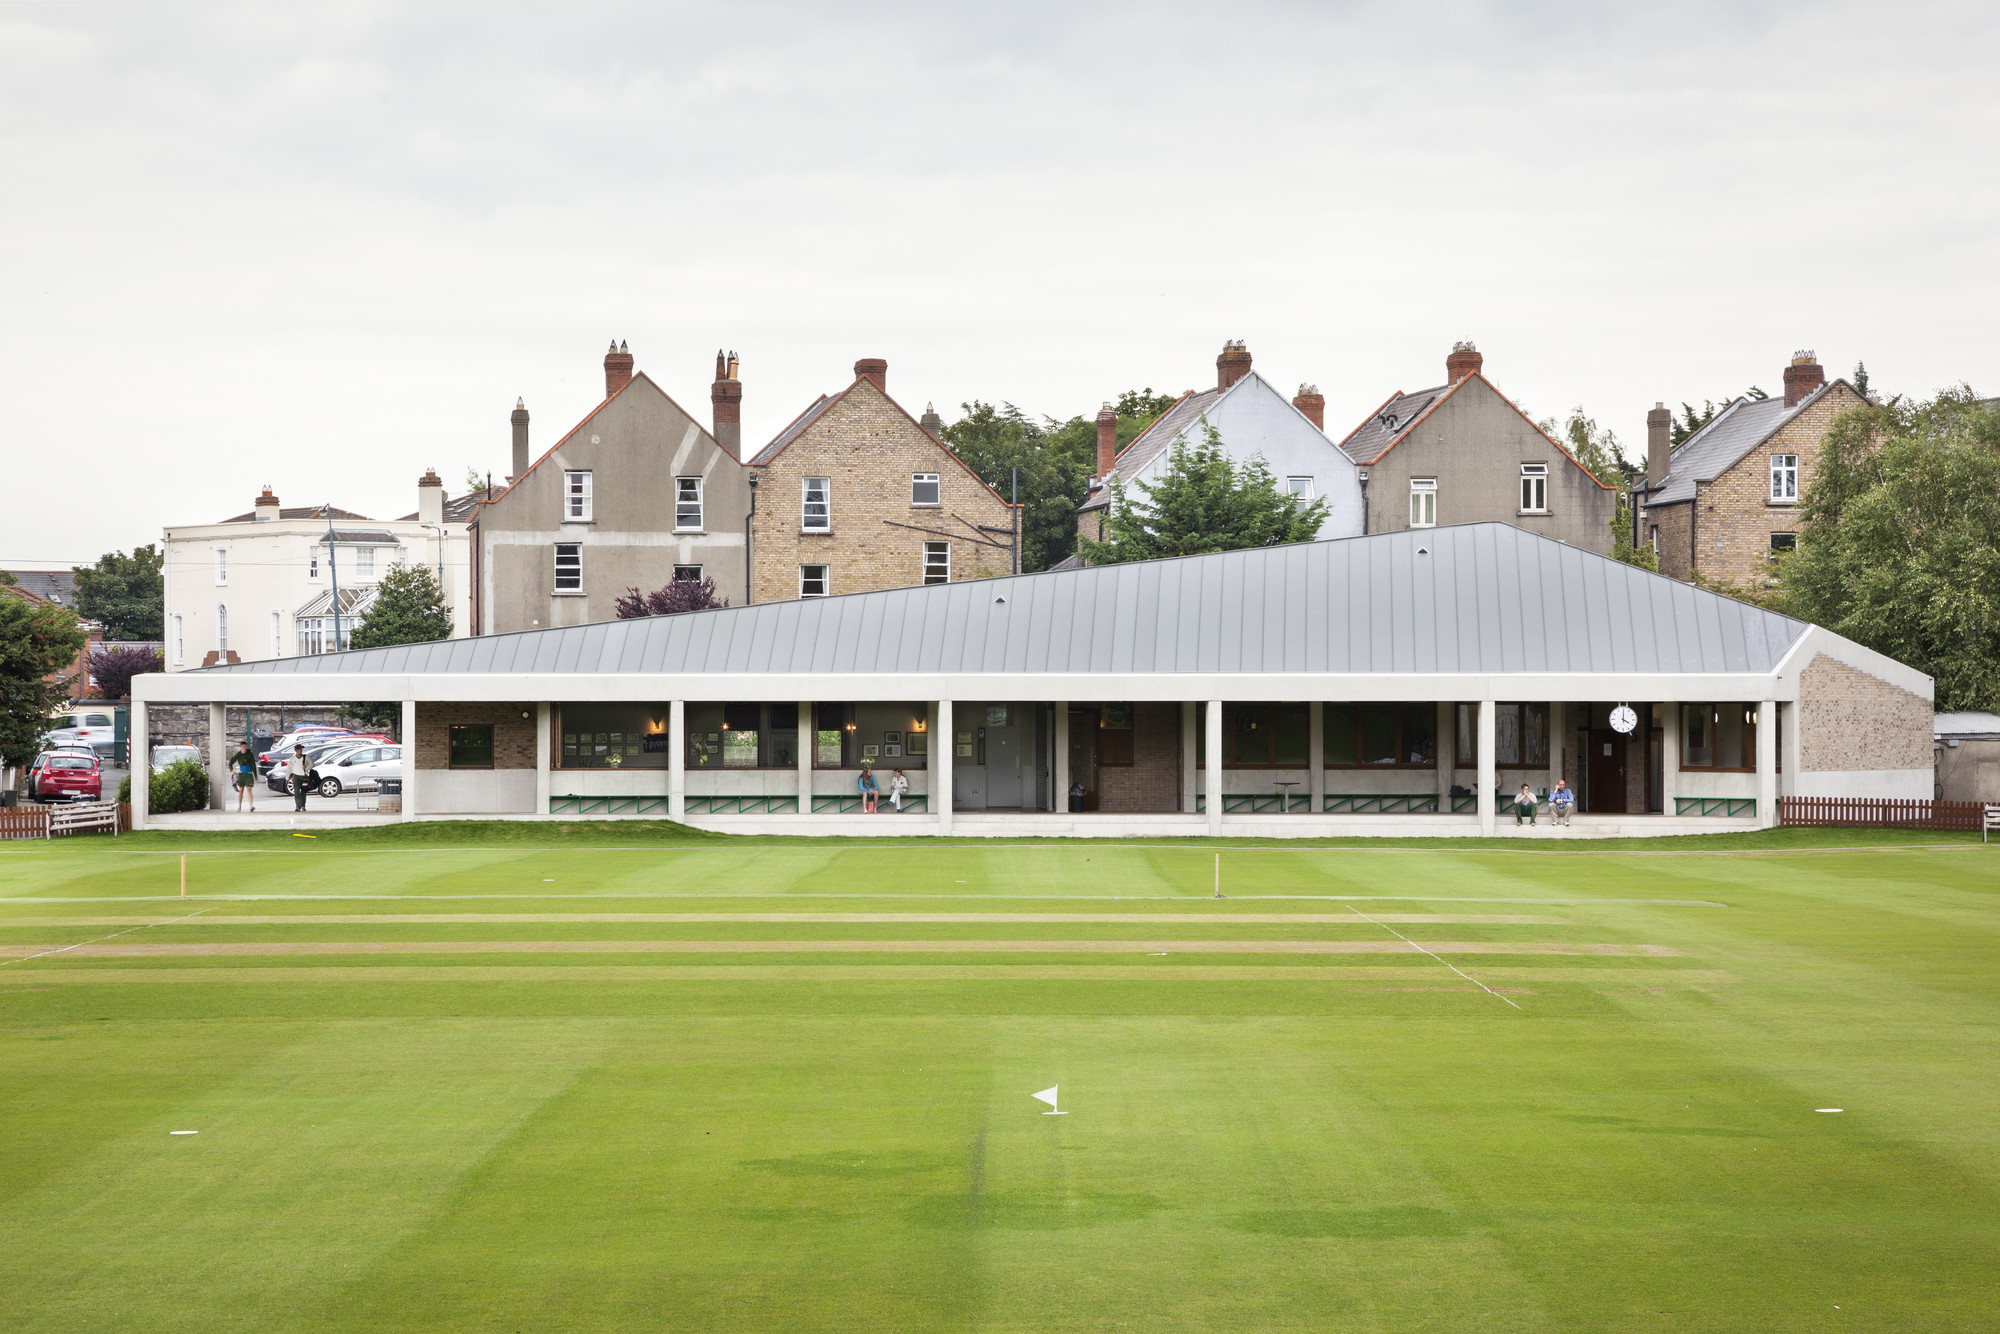 Club de Cricket Merrion / TAKA Architects, © Alice Clancy